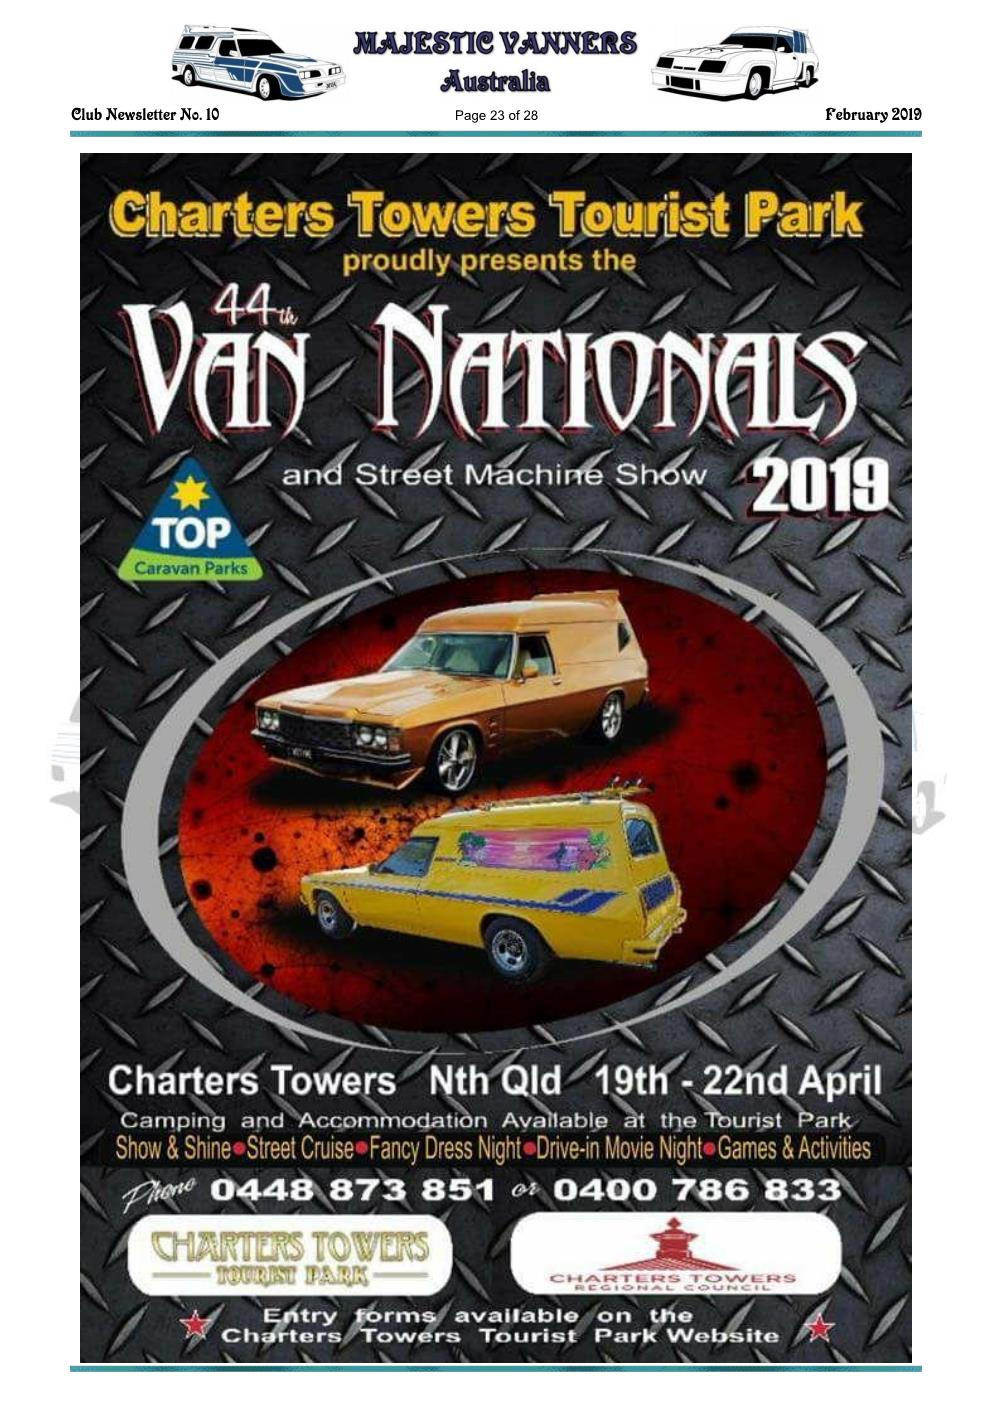 MAJESTIC VANNERS Newsletter Issue No: 10 February 2019 Mv_new32